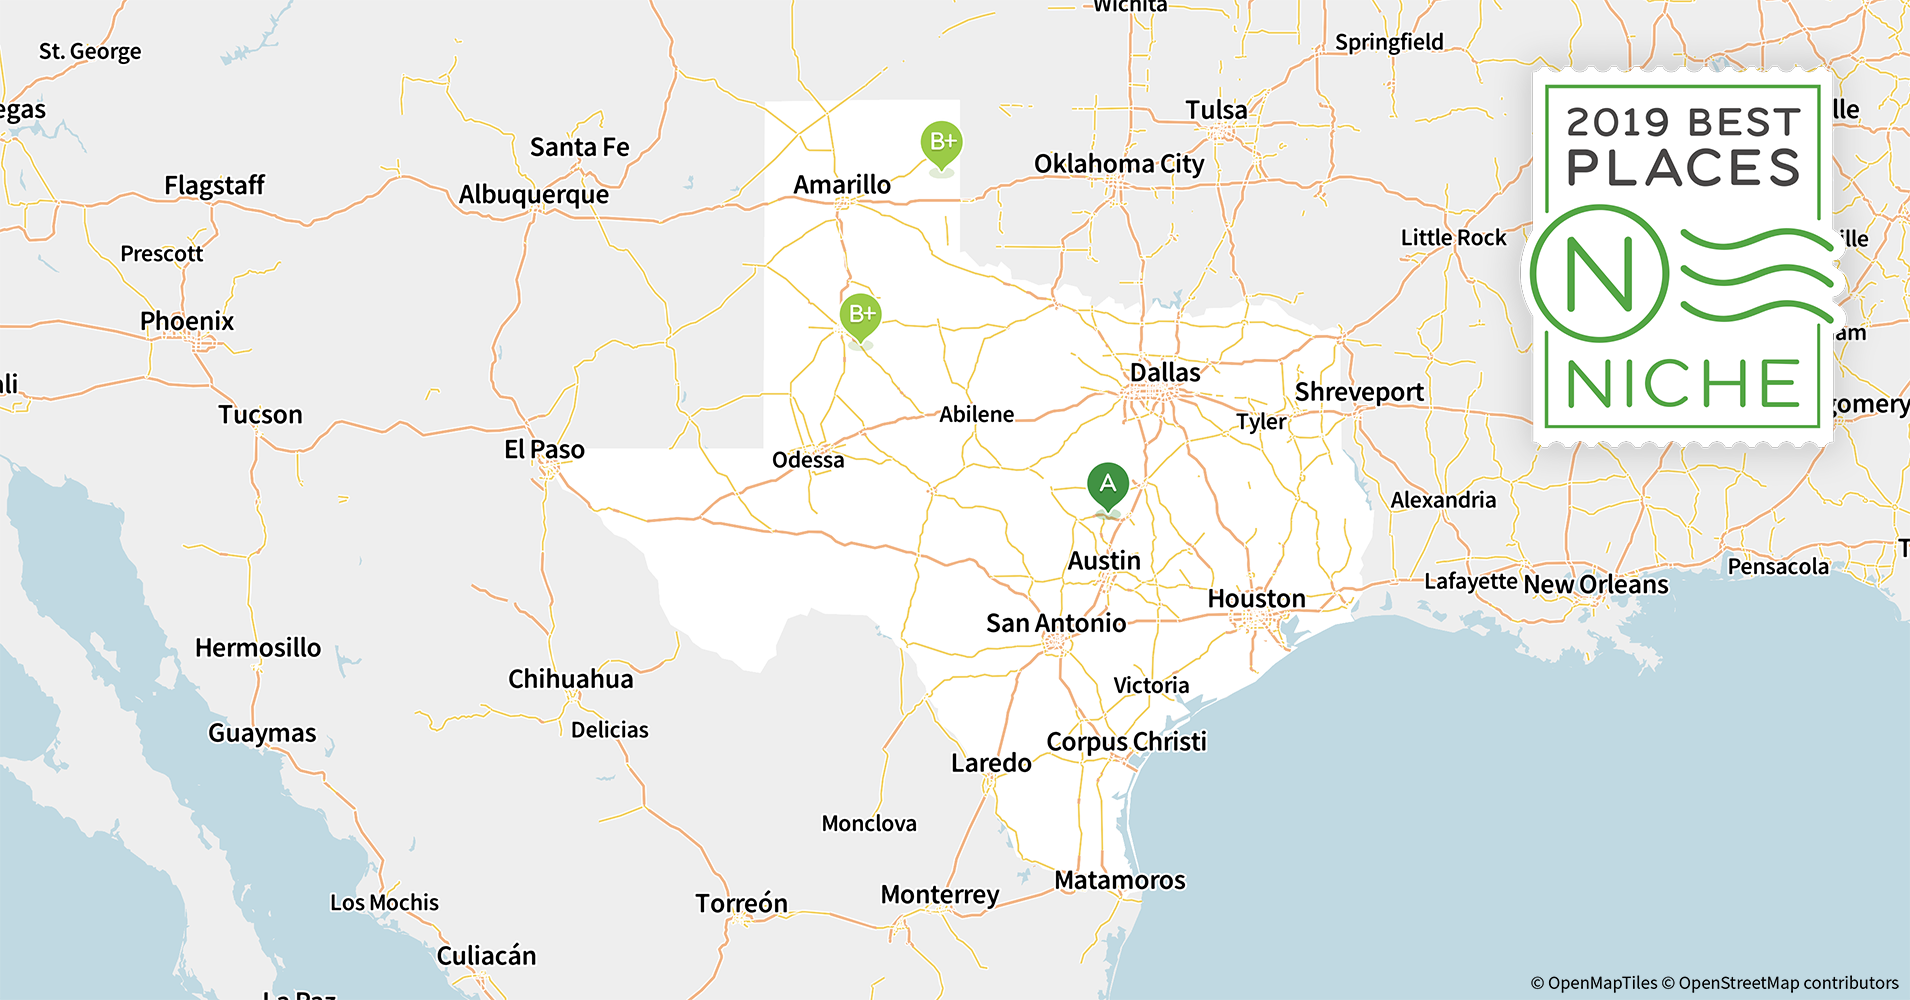 Map Of Major Cities In Texas.2019 Best Places To Live In Texas Niche